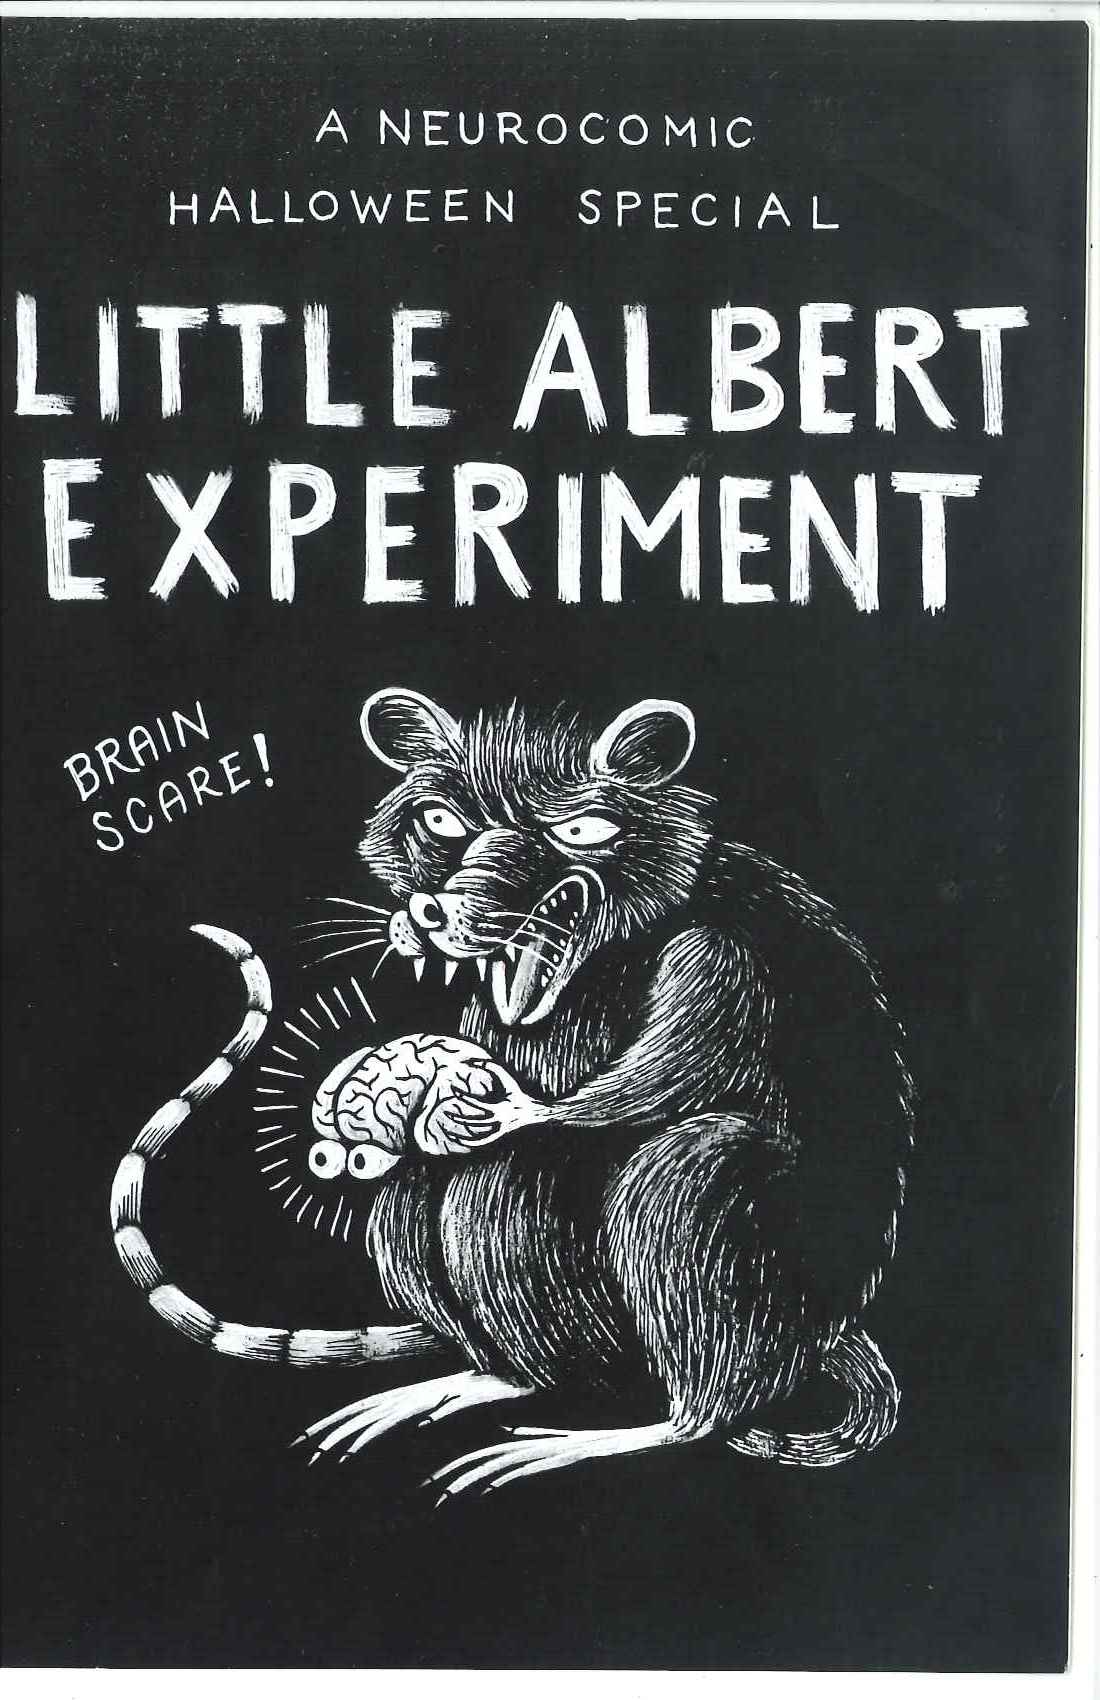 watsons little albert experiment Just about any serious psychologist and psychologist in training can recall the story of john watson and his experiment of classical conditioning on little albert.